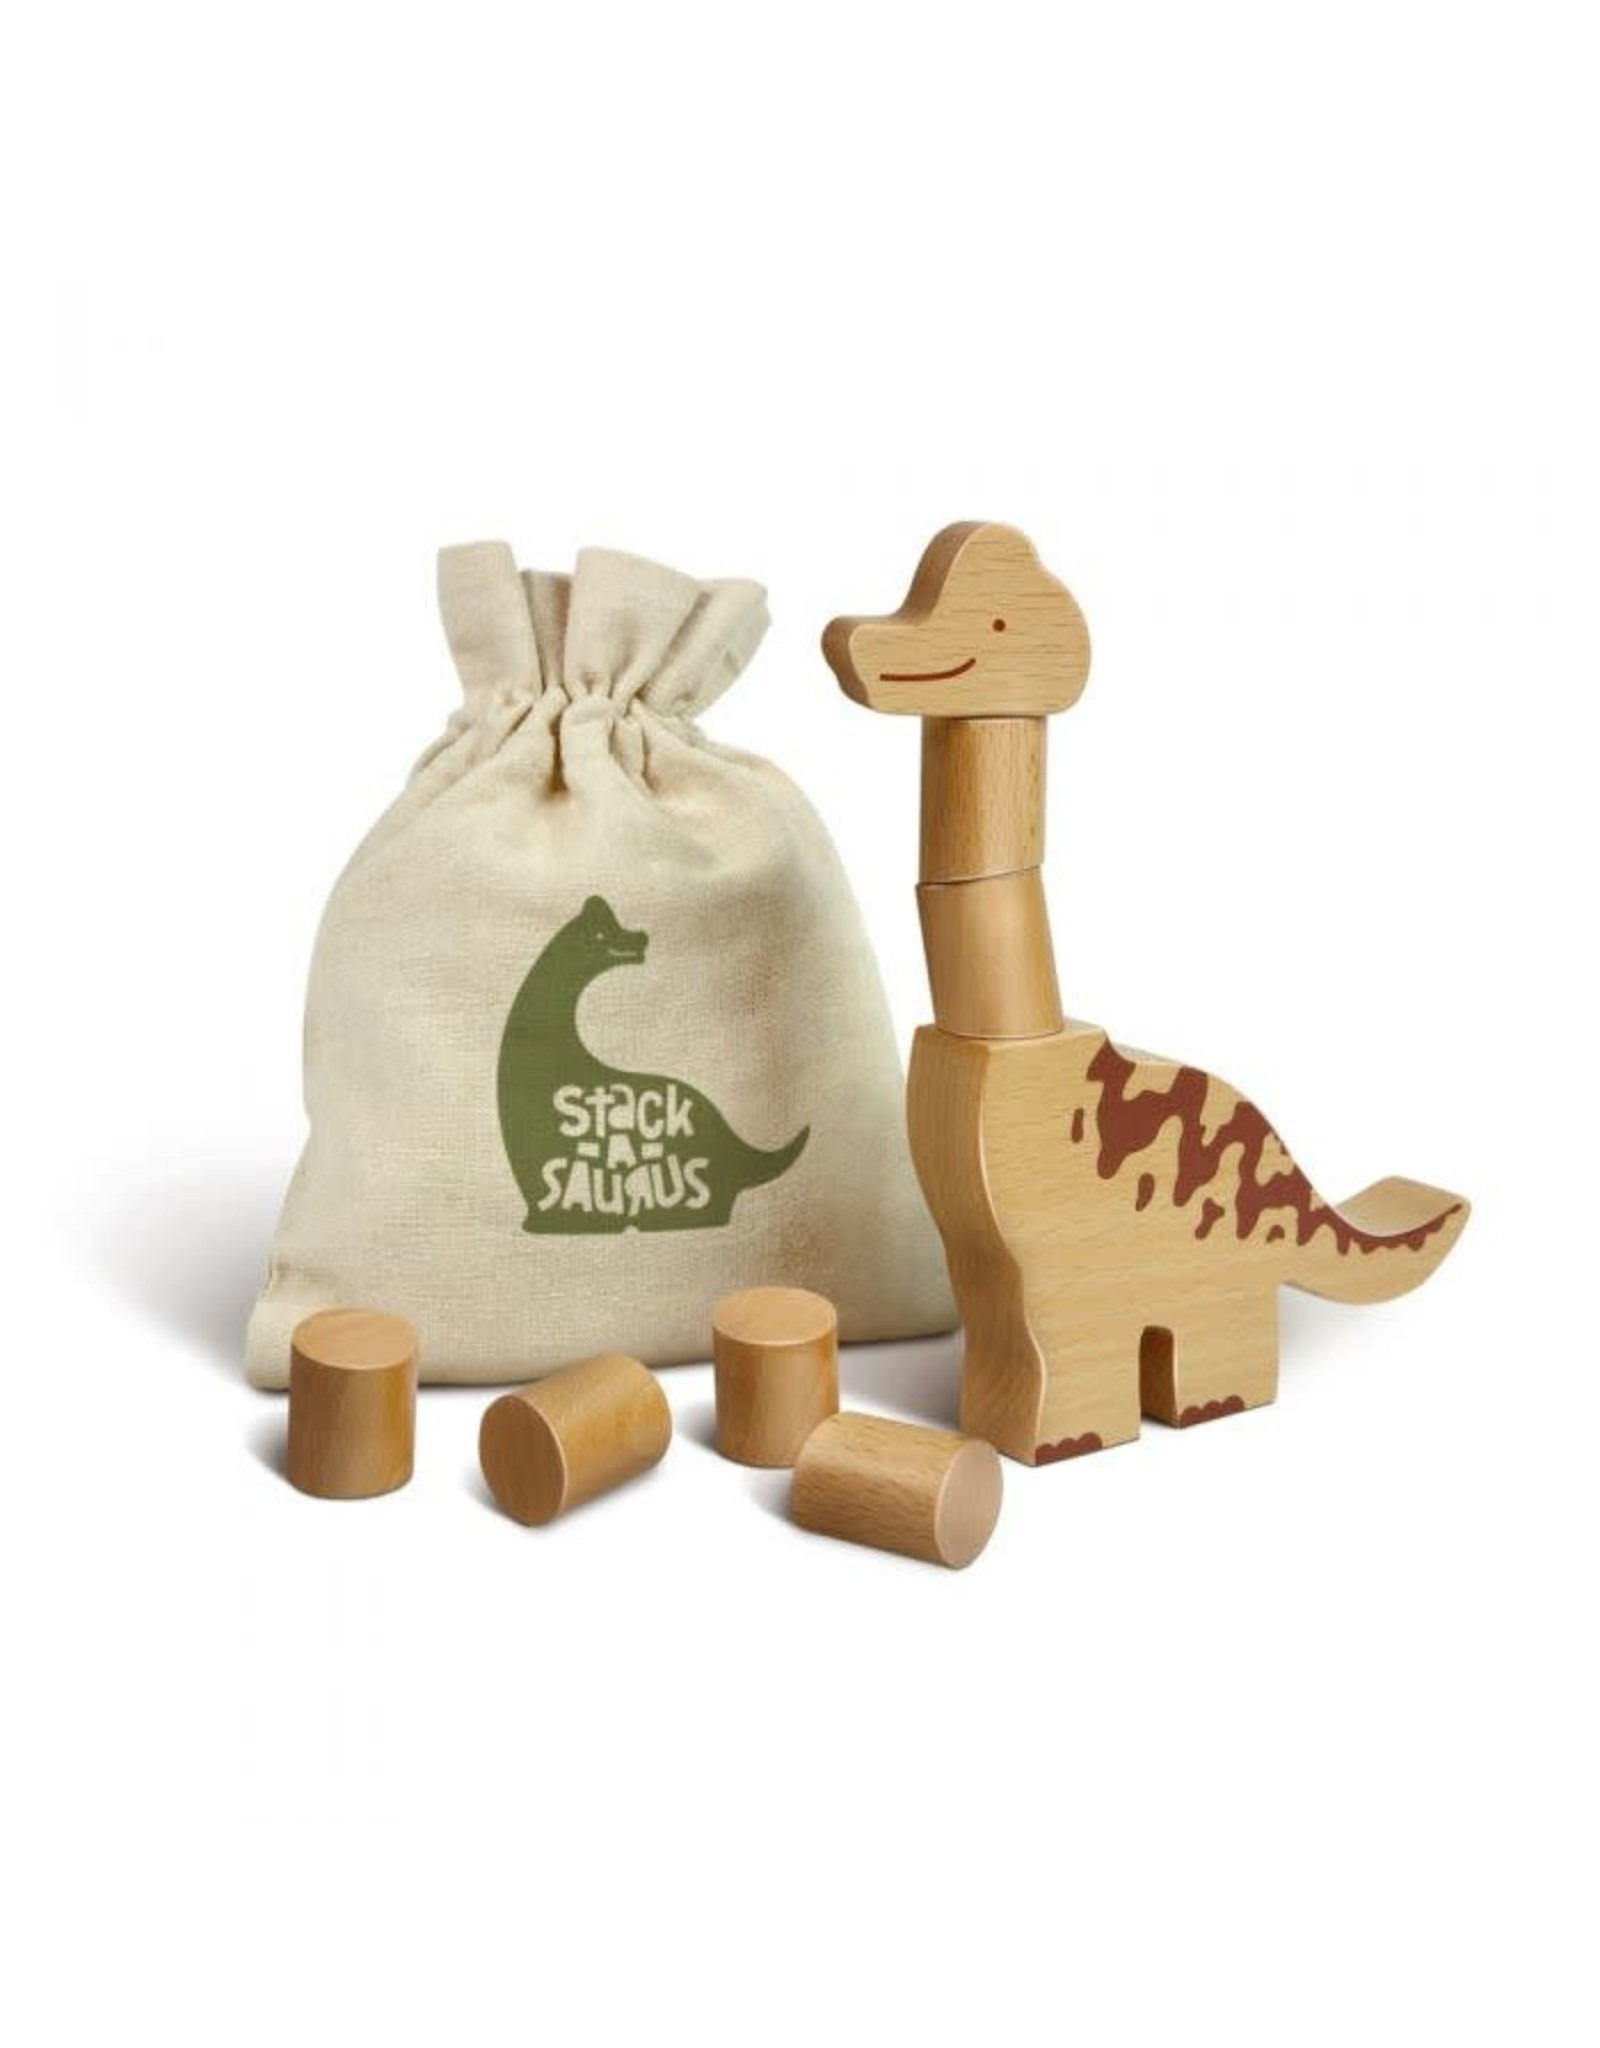 Fred & Friends Stack-A-Saurus, Wooden Stacking Game